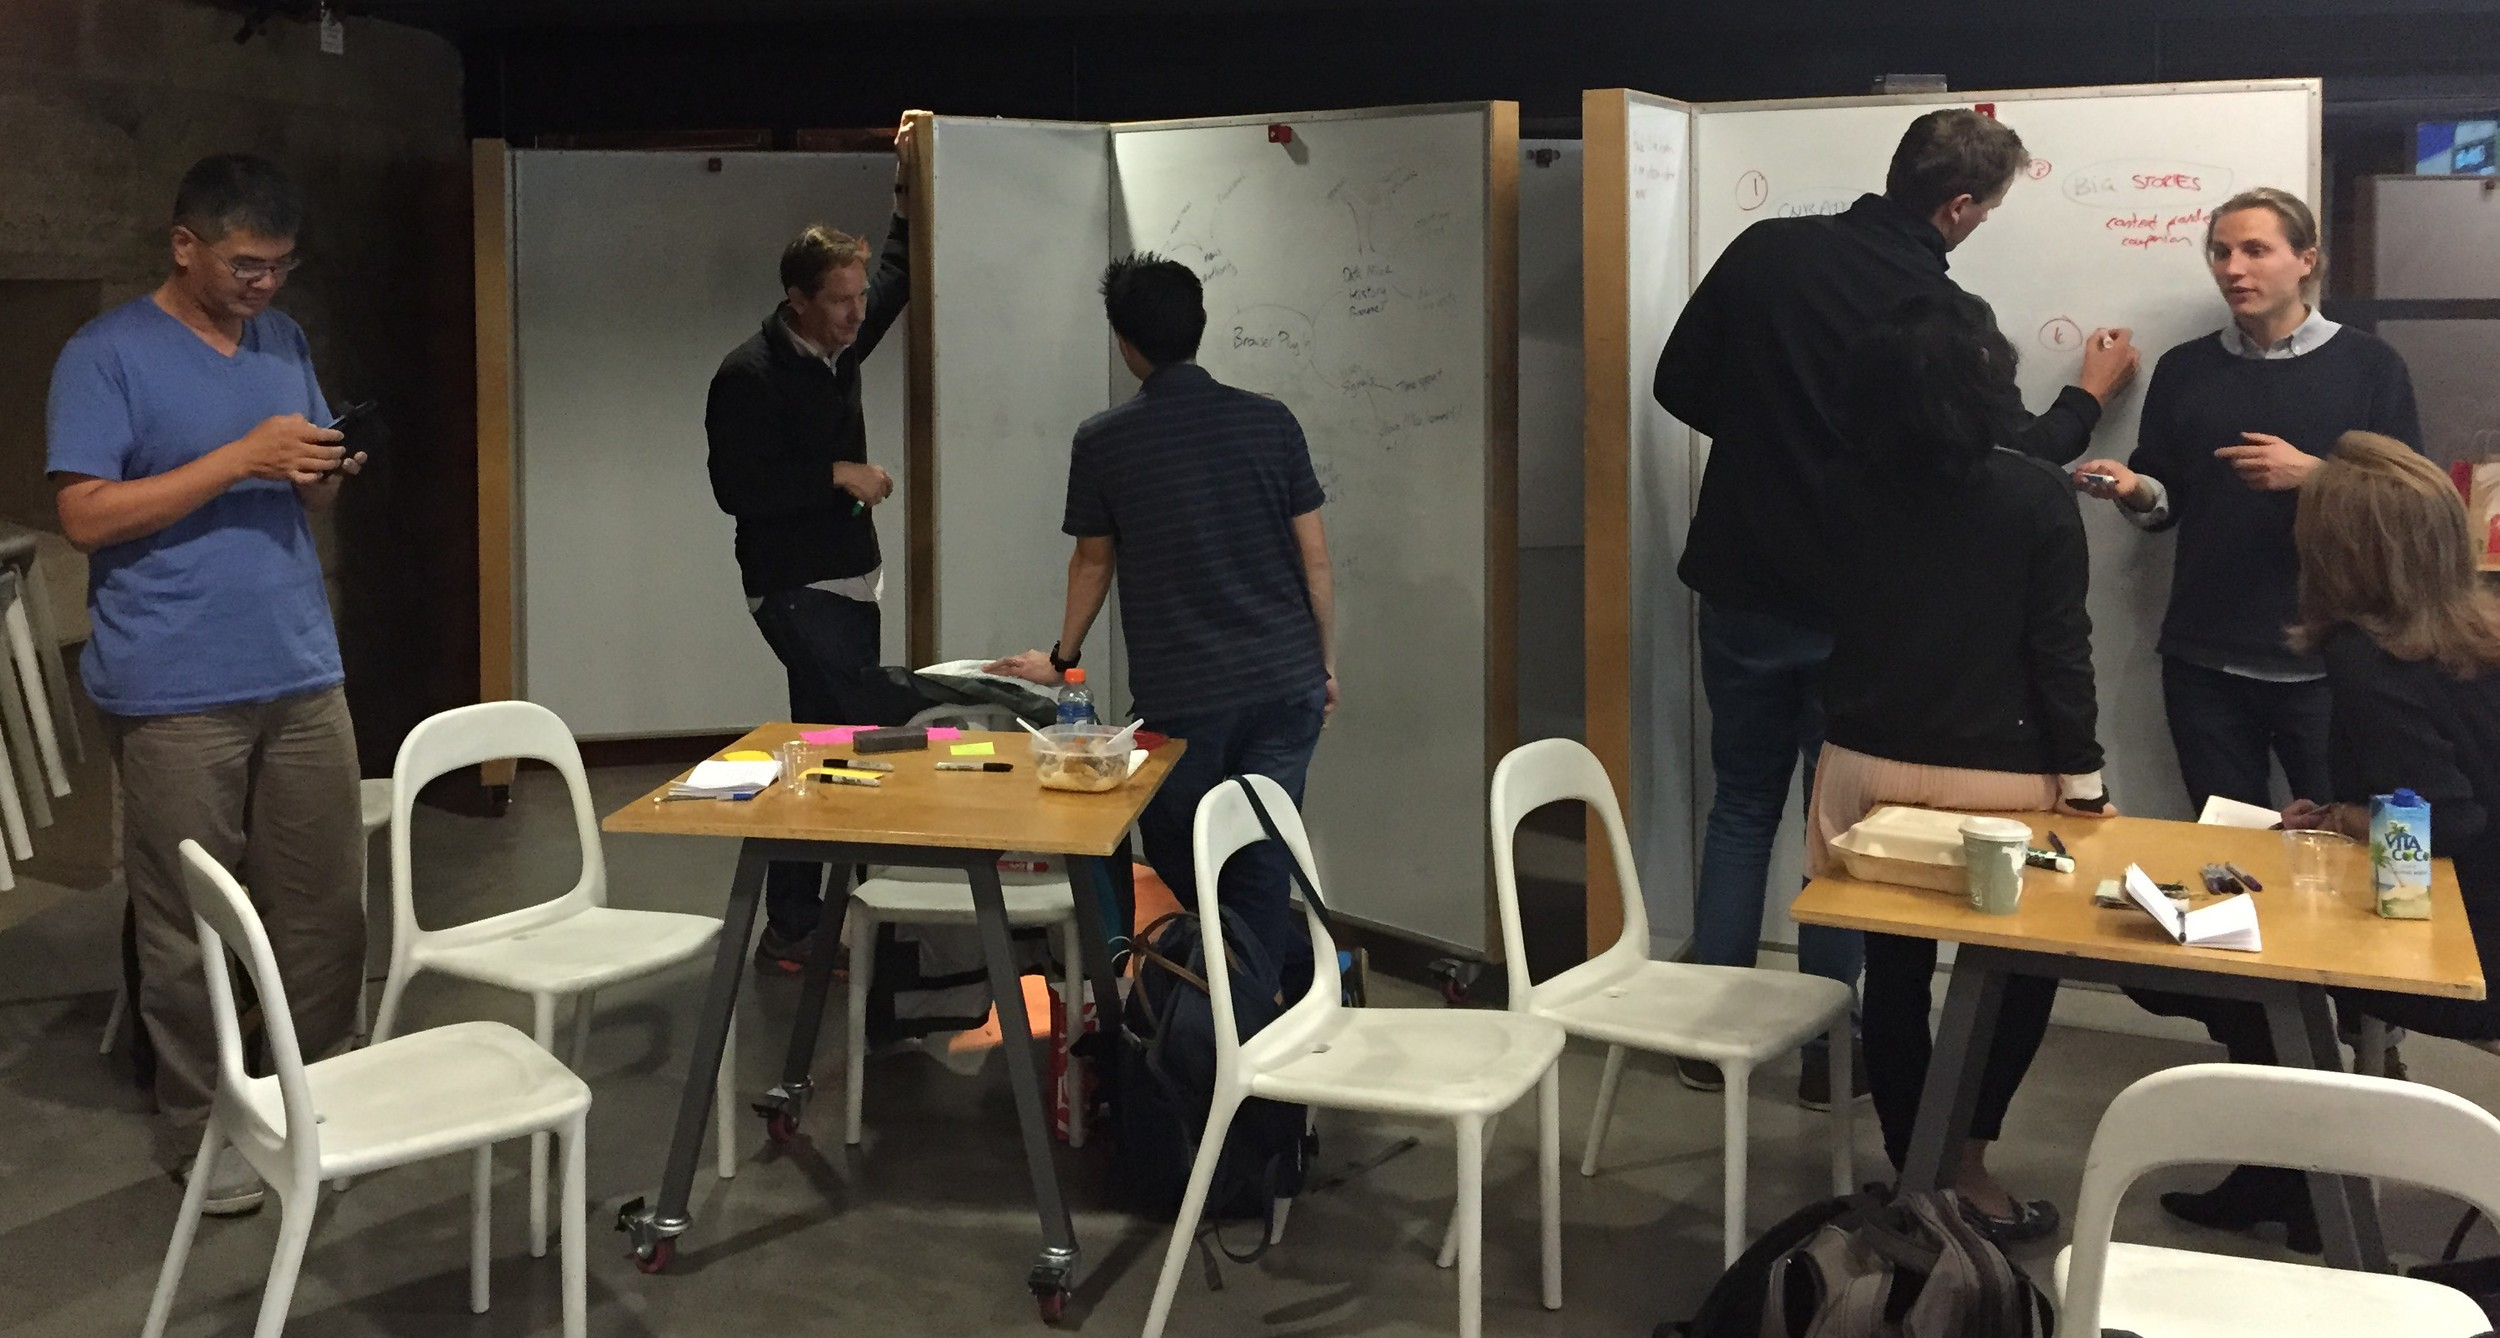 Students churn away on their ideas, implementing constraints and iterating on their ideas.